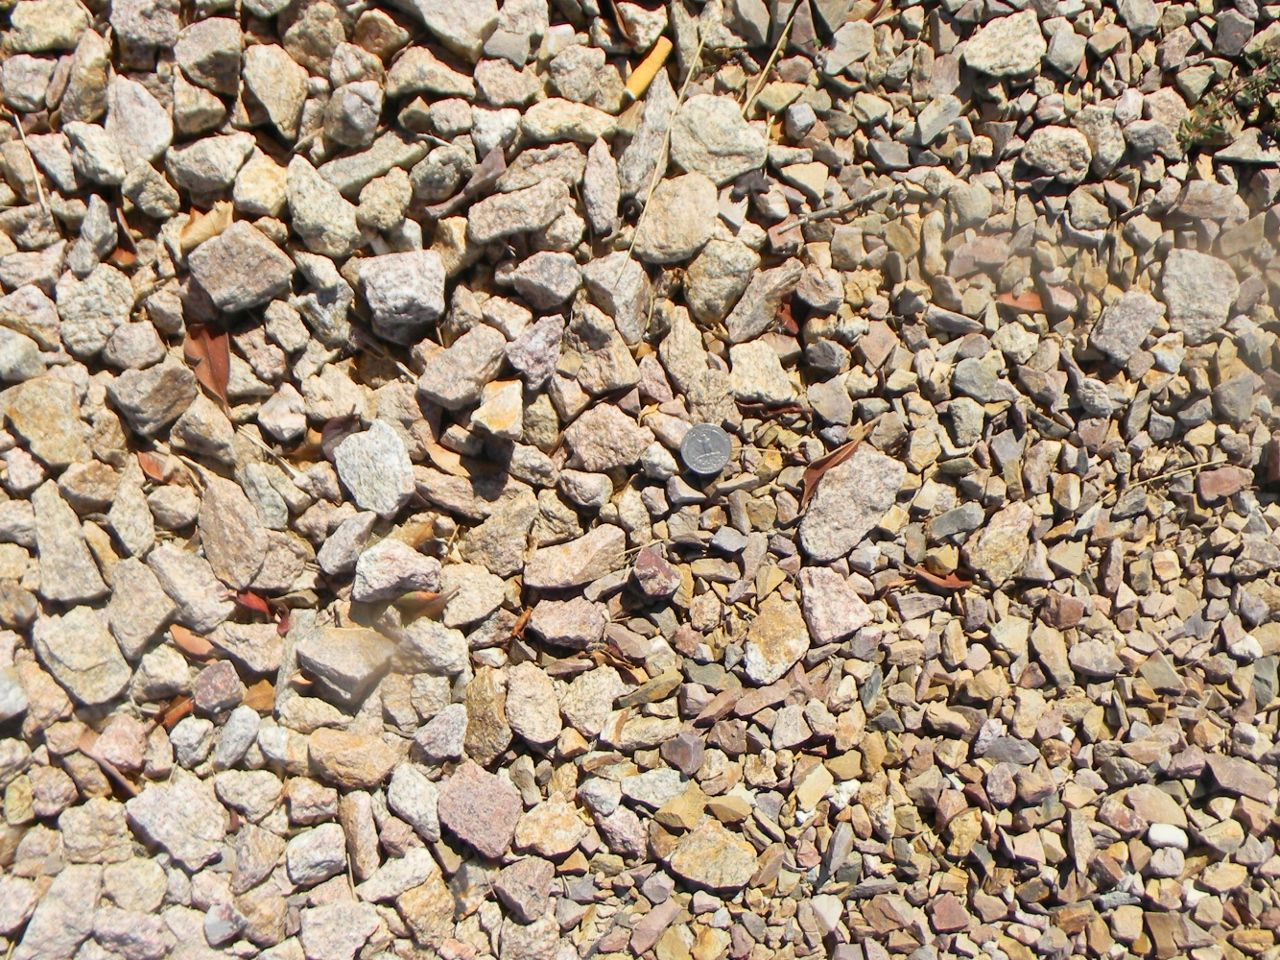 Palomino Coral Gravel 3 4 Screened And On The Right Apache Brown Gravel 5 8 Screened Both Of These Products Are Very Free Landscape Design Gravel River Rock